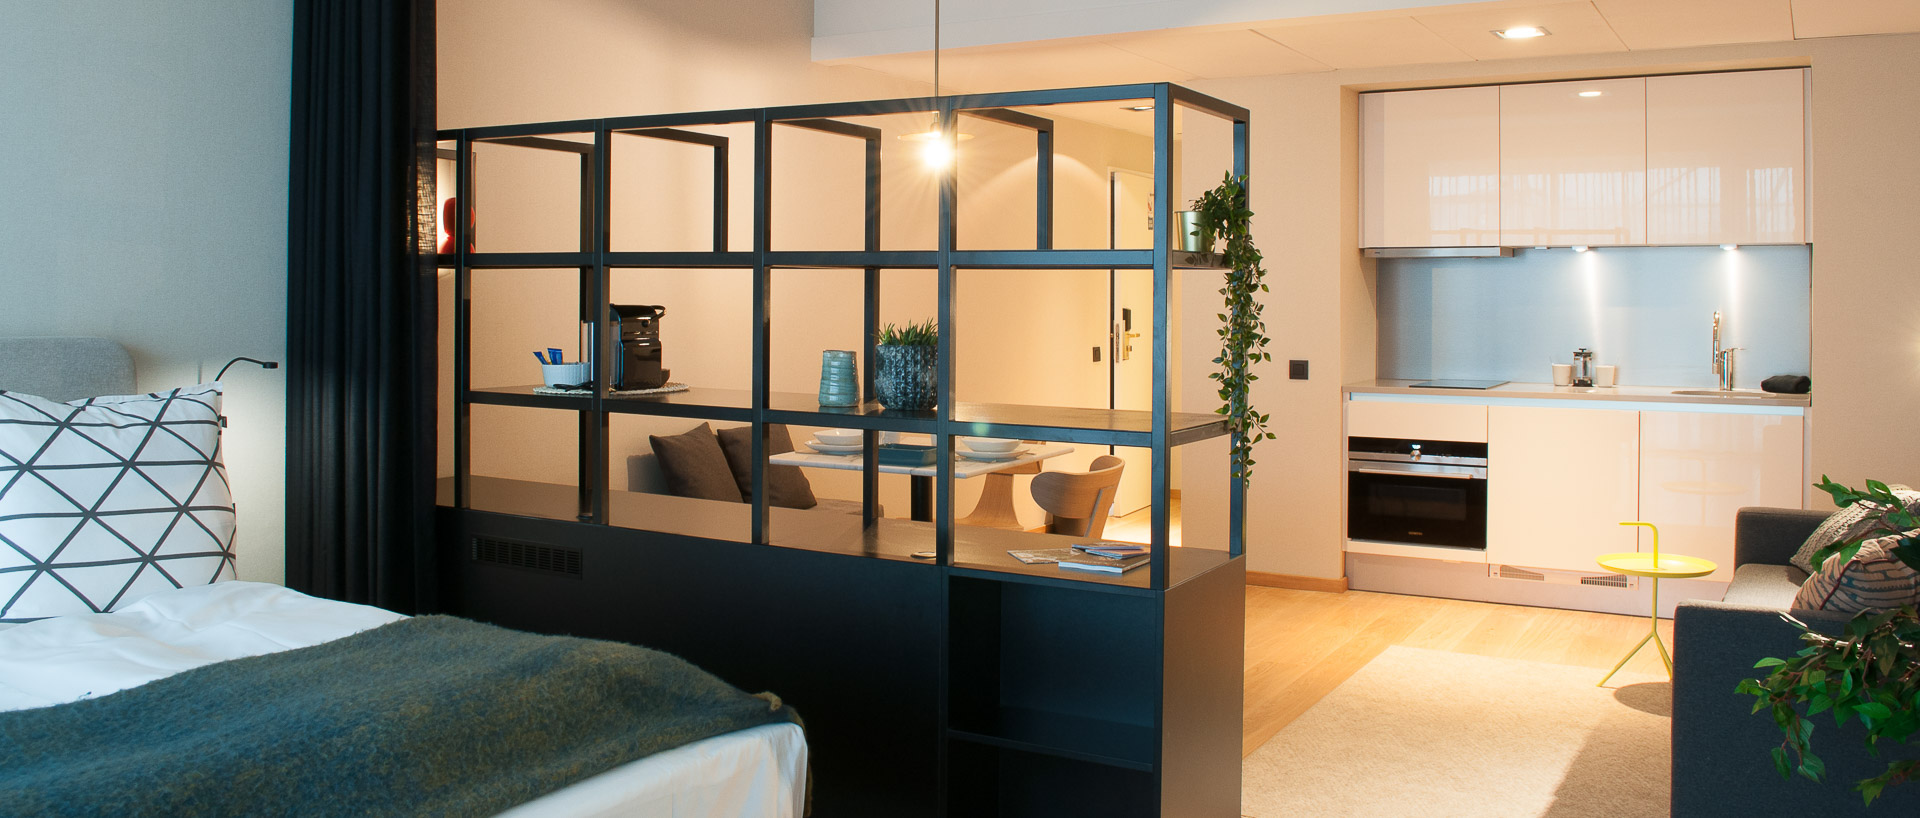 Kitchenette with bed in PREMIER SUITES PLUS Antwerp